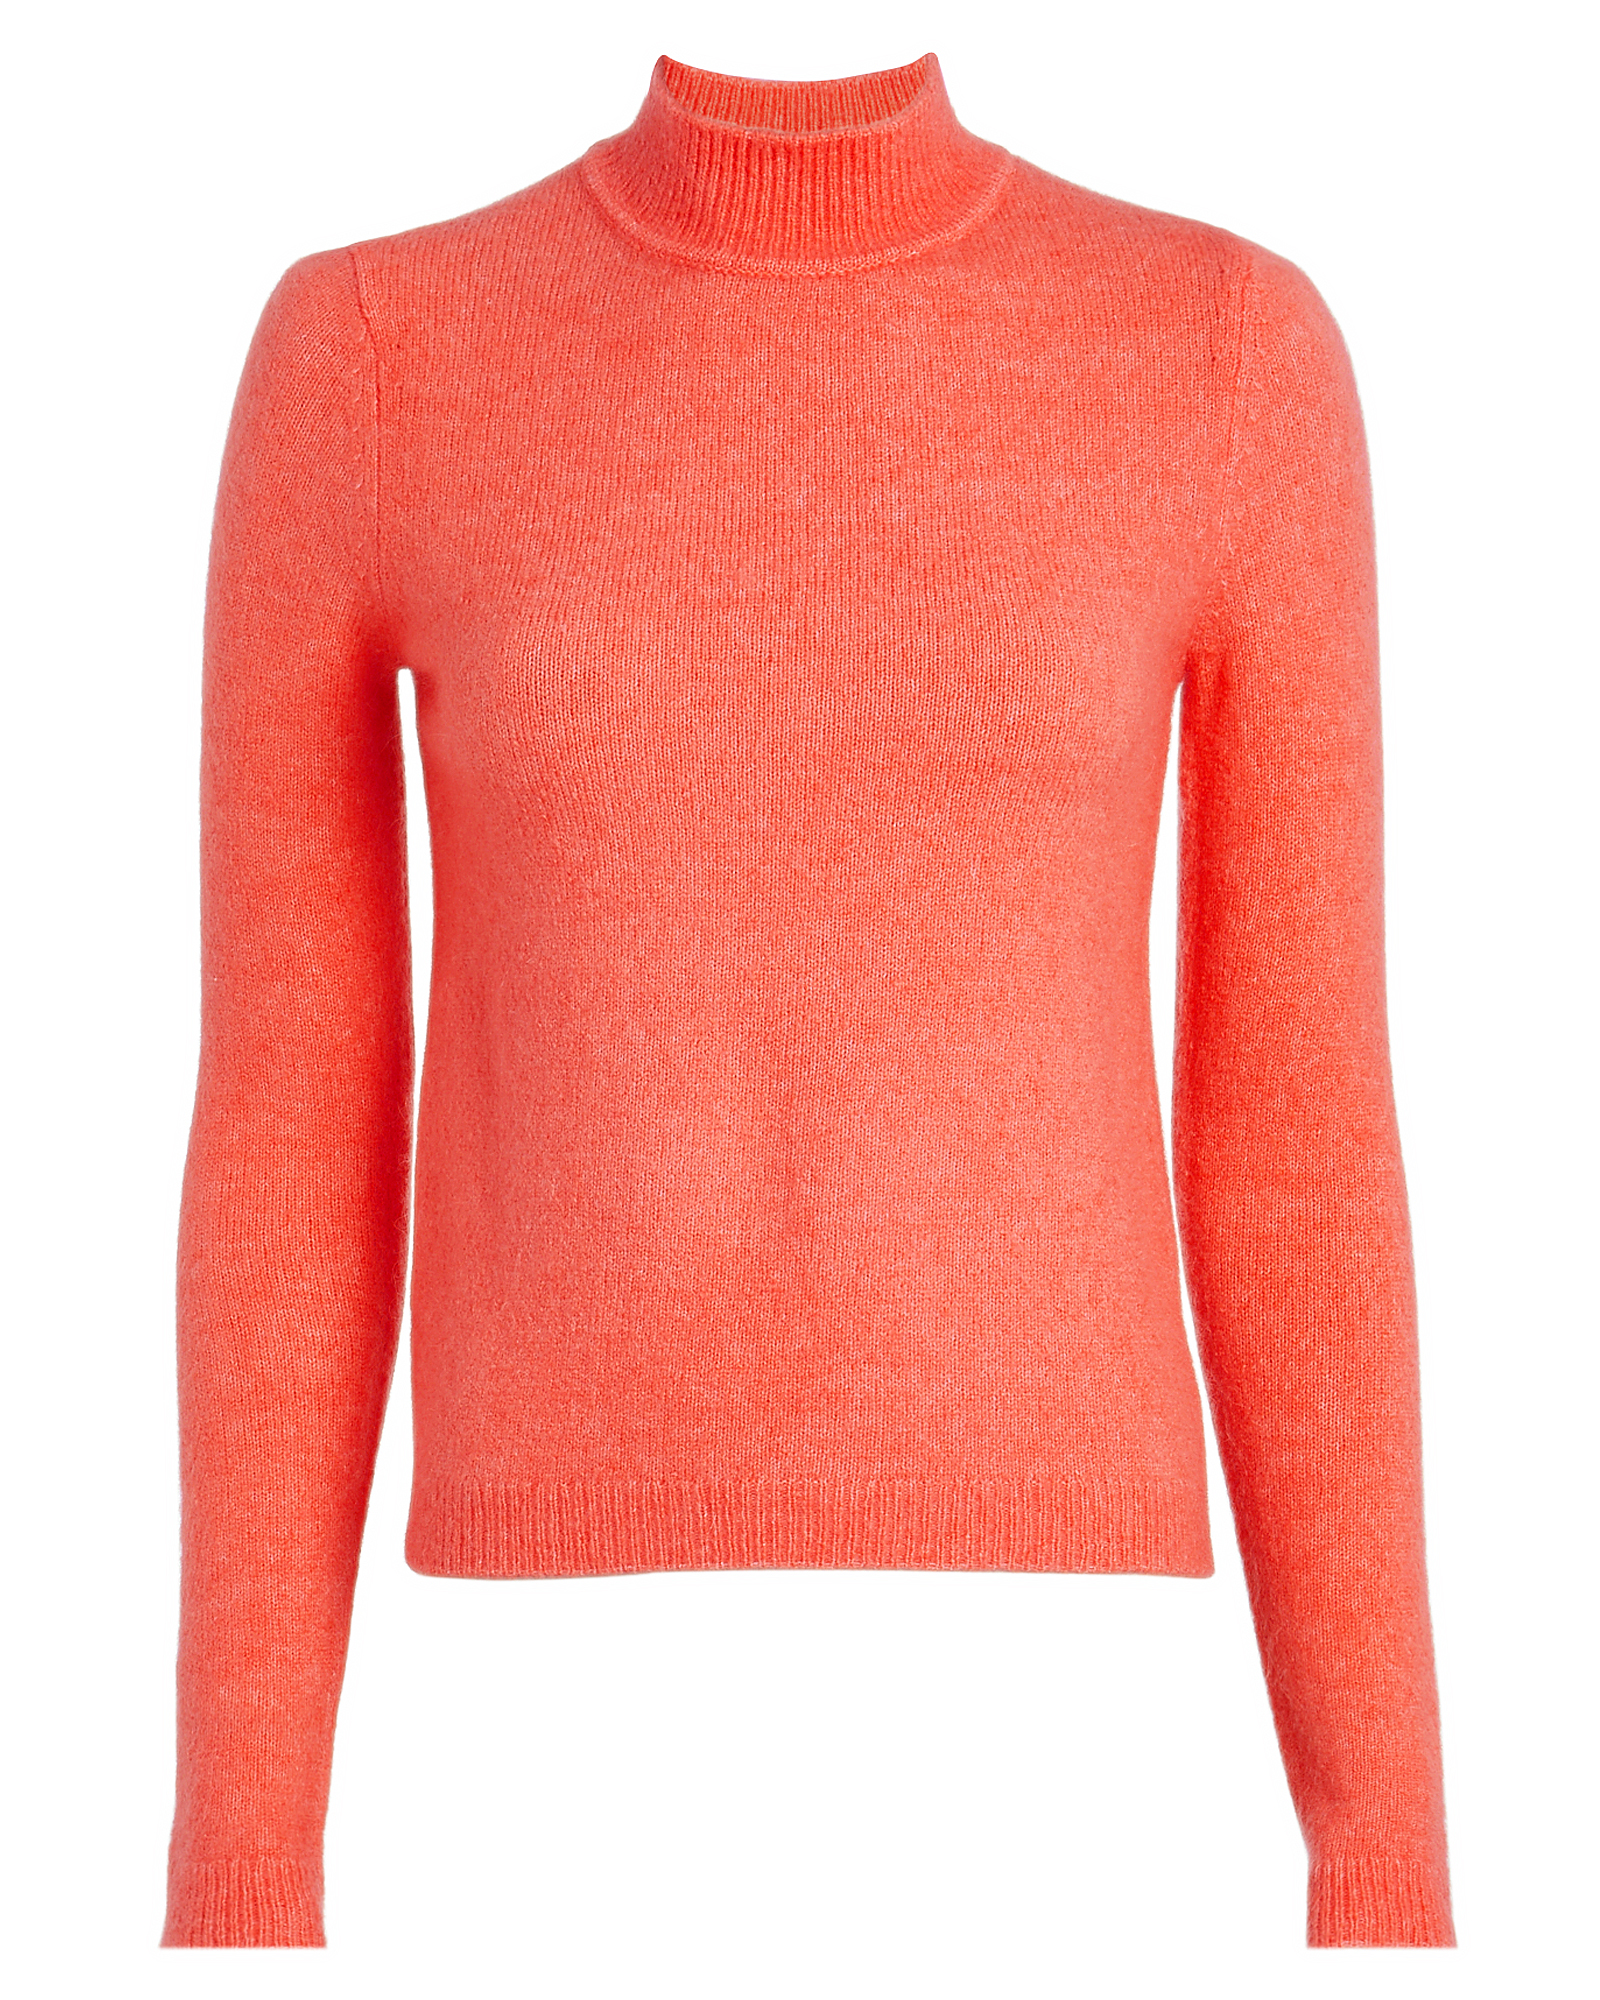 EXCLUSIVE FOR INTERMIX Intermix Evie Sweater Bright Cora